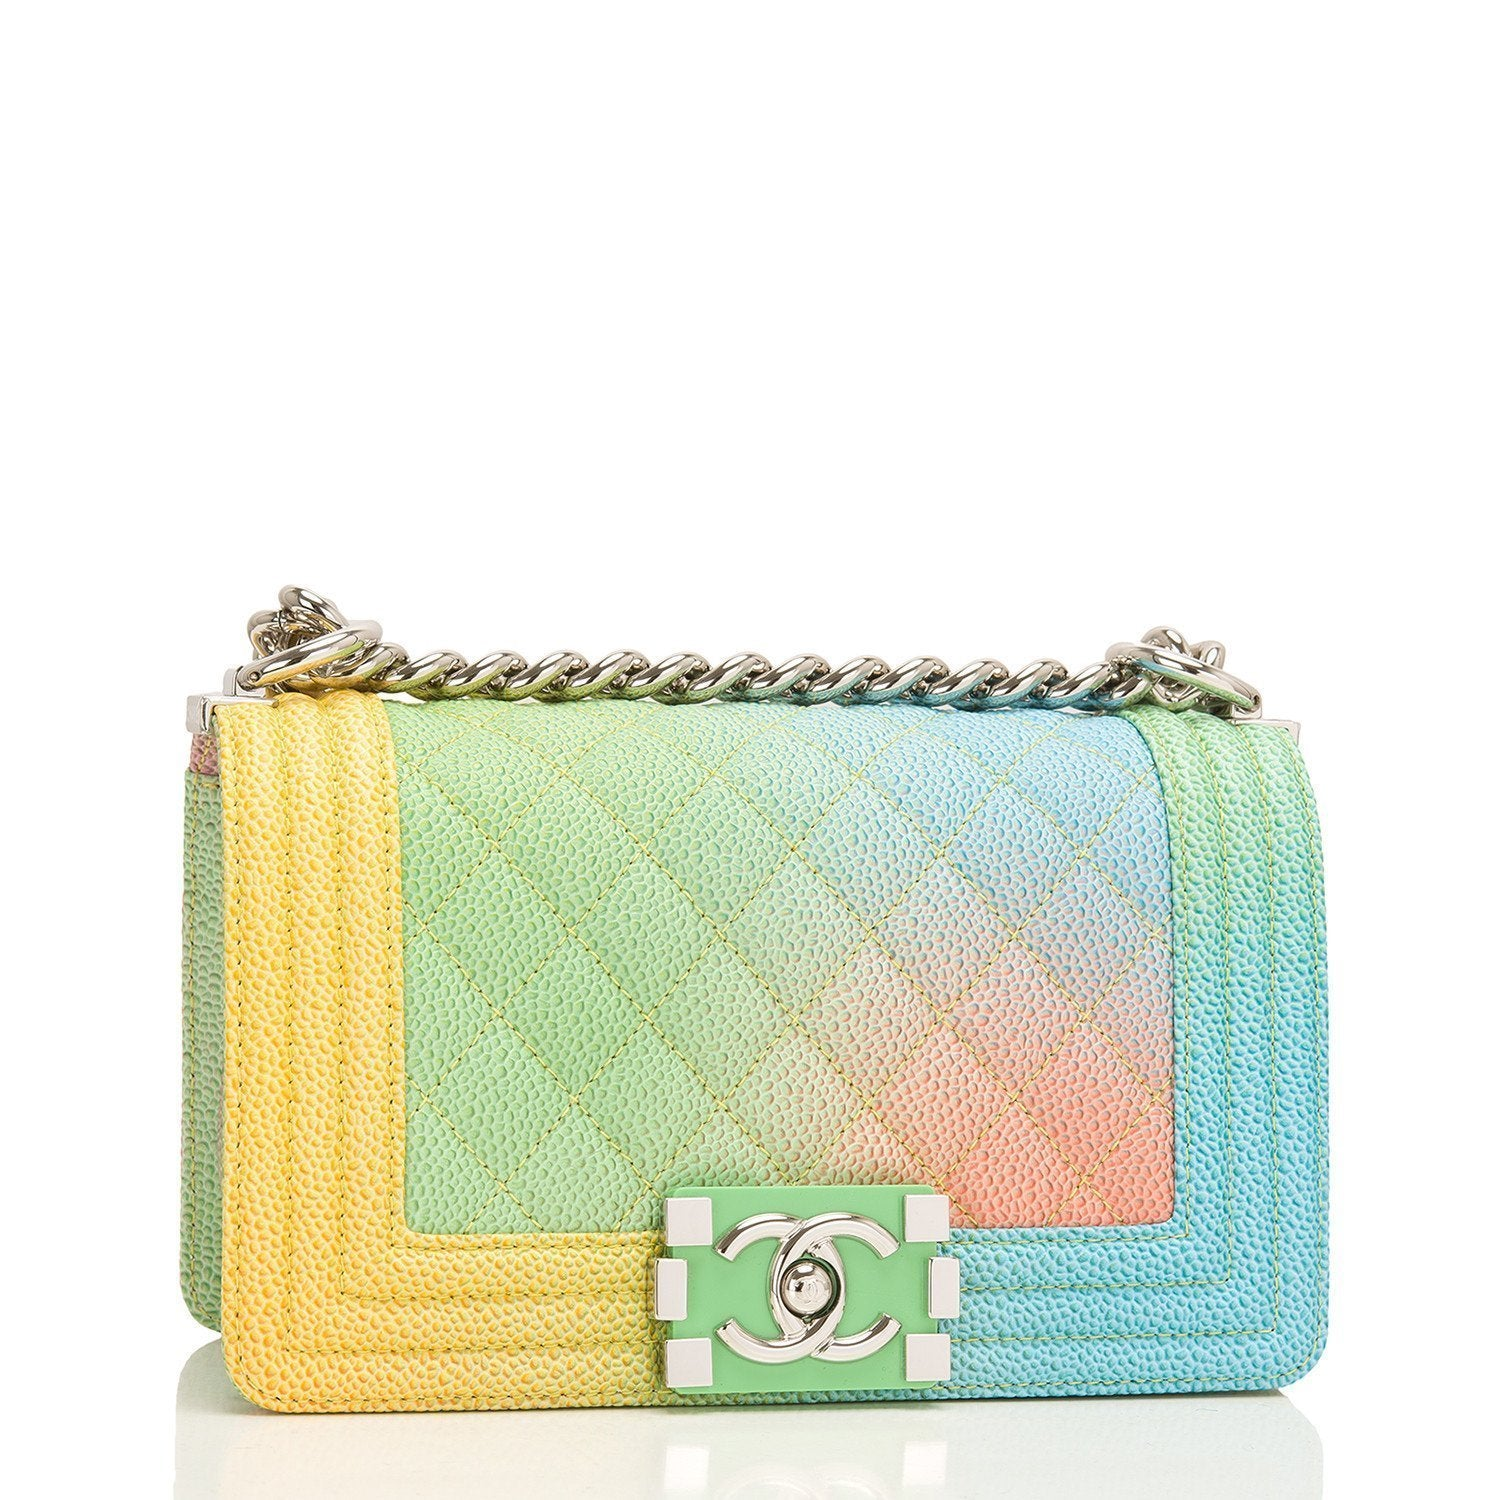 56c16d6d635e Chanel Rainbow Printed Caviar Small Boy Bag – Madison Avenue Couture